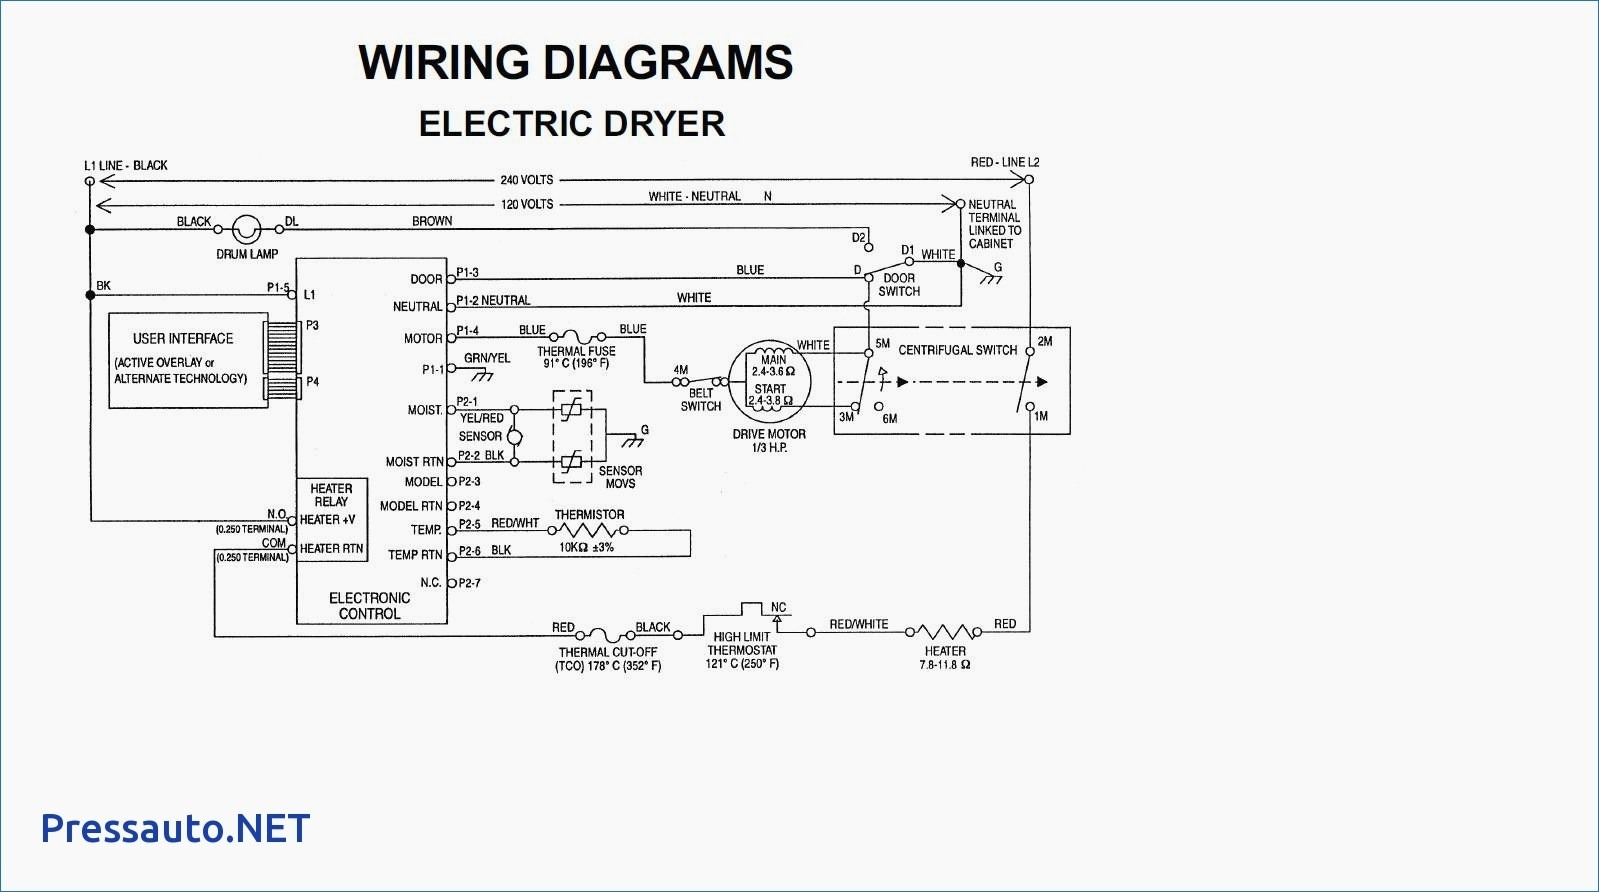 frigidaire dryer wiring diagram Collection-Frigidaire Dryer Wiring Diagram Unique Amana Dryer Troubleshooting Free Troubleshooting Examples 16-o